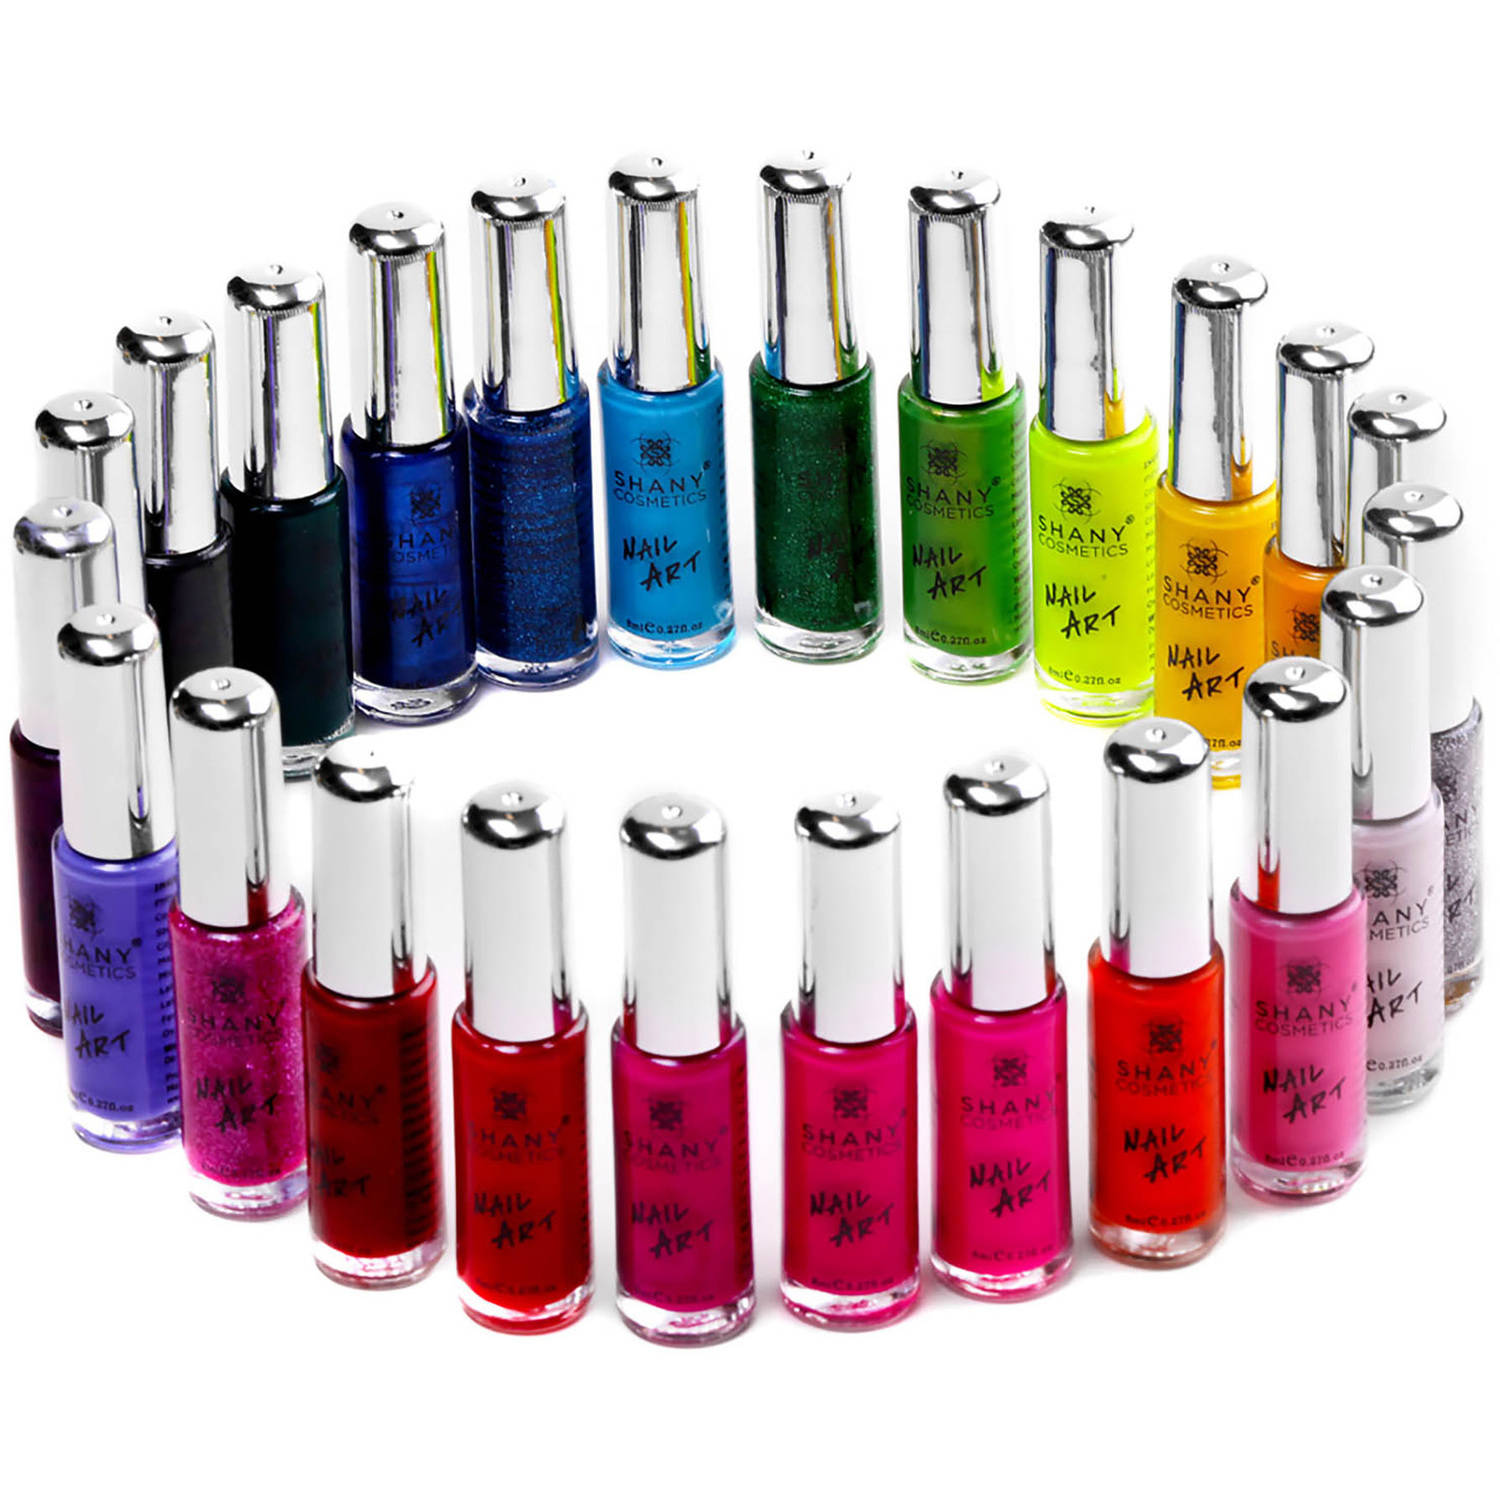 SHANY Cosmetics Nail Art Nail Polish Set, 0.27 fl oz, 24 count